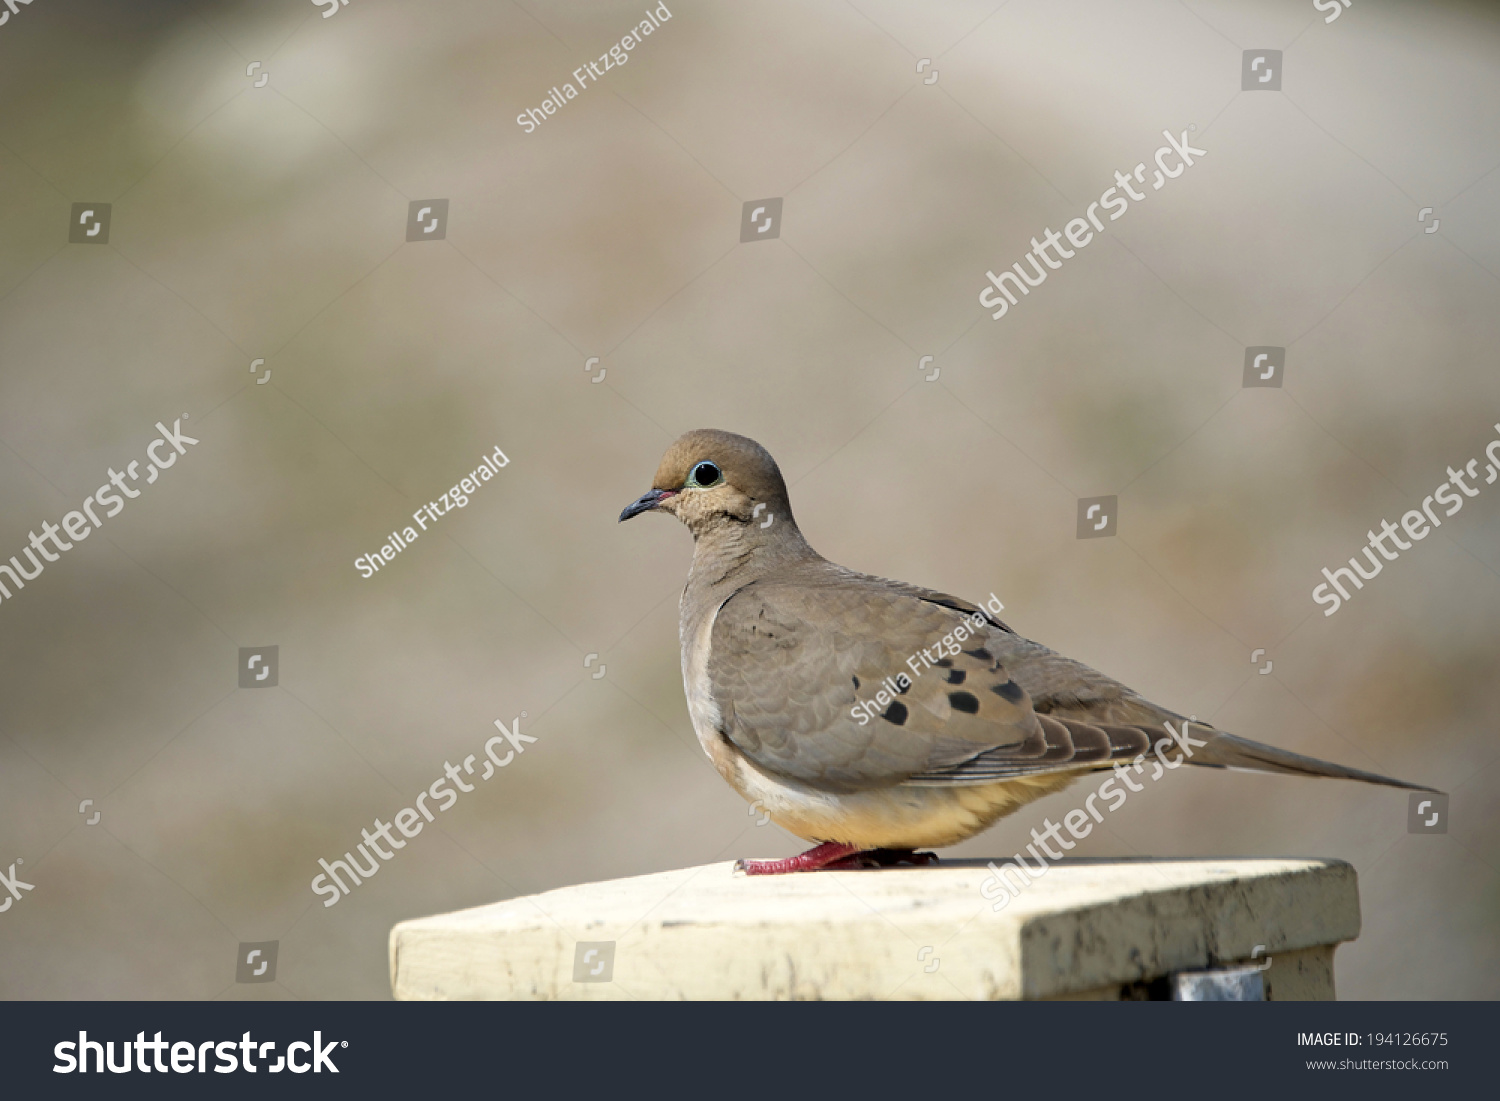 2 doves symbolism image collections symbol and sign ideas 2 doves symbolism gallery symbol and sign ideas mourning doves symbolism image collections symbol and sign buycottarizona